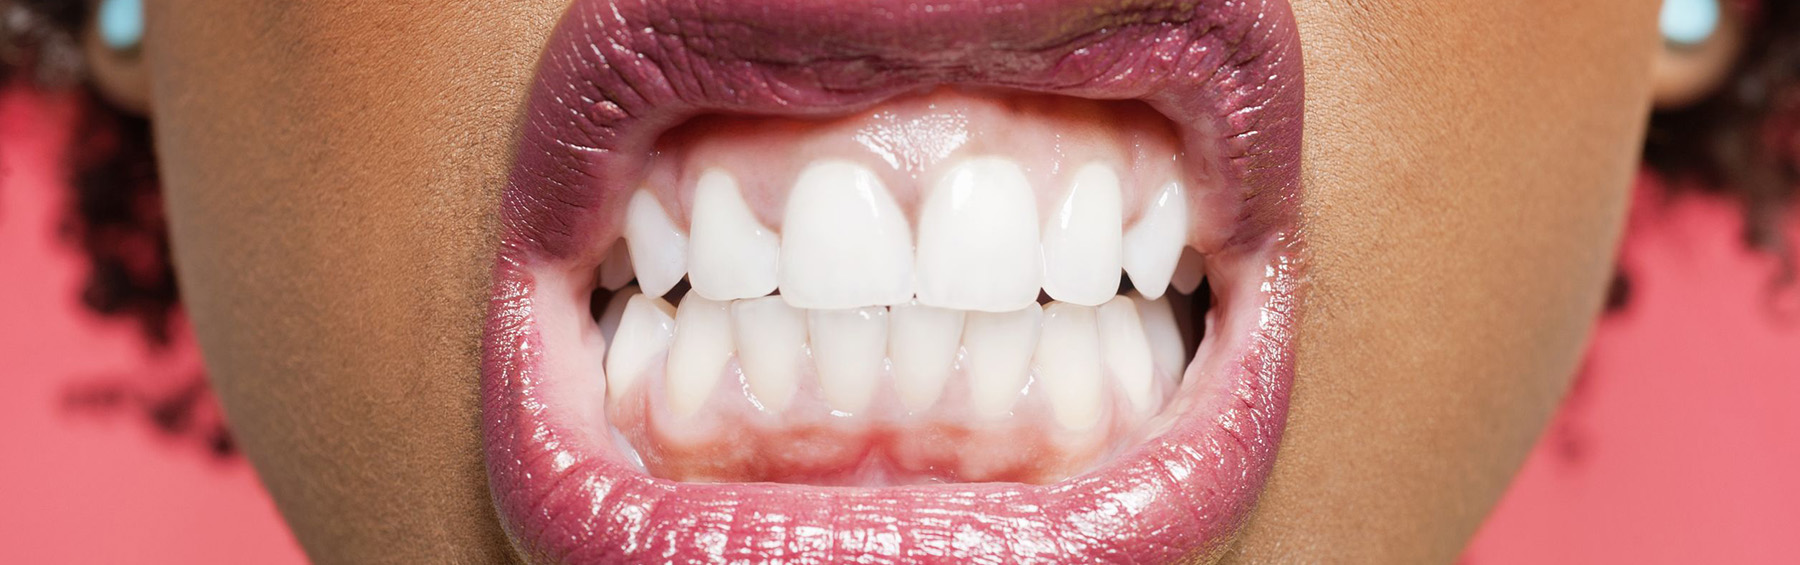 So why is there a bruxism epidemic among middle-aged women?